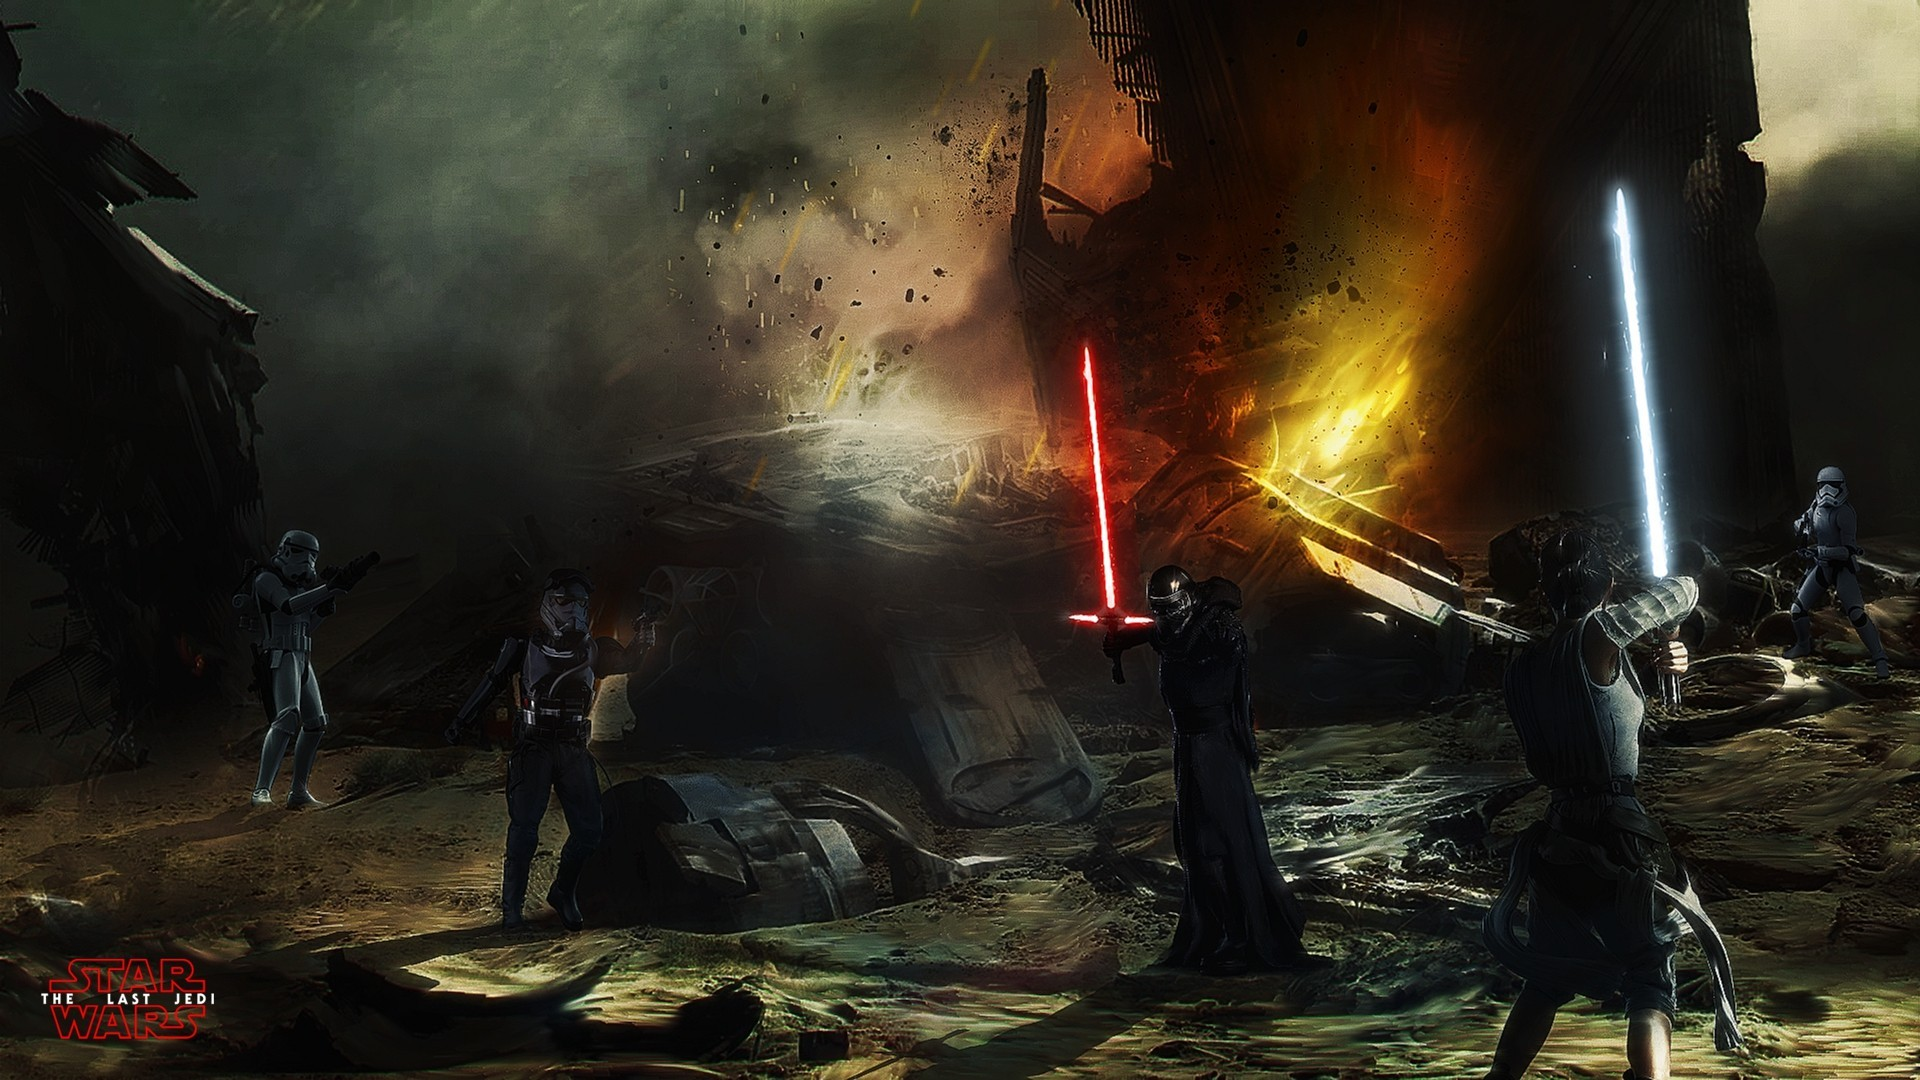 Kylo Ren Wallpaper 1920x1080 Download Free Cool Wallpapers For